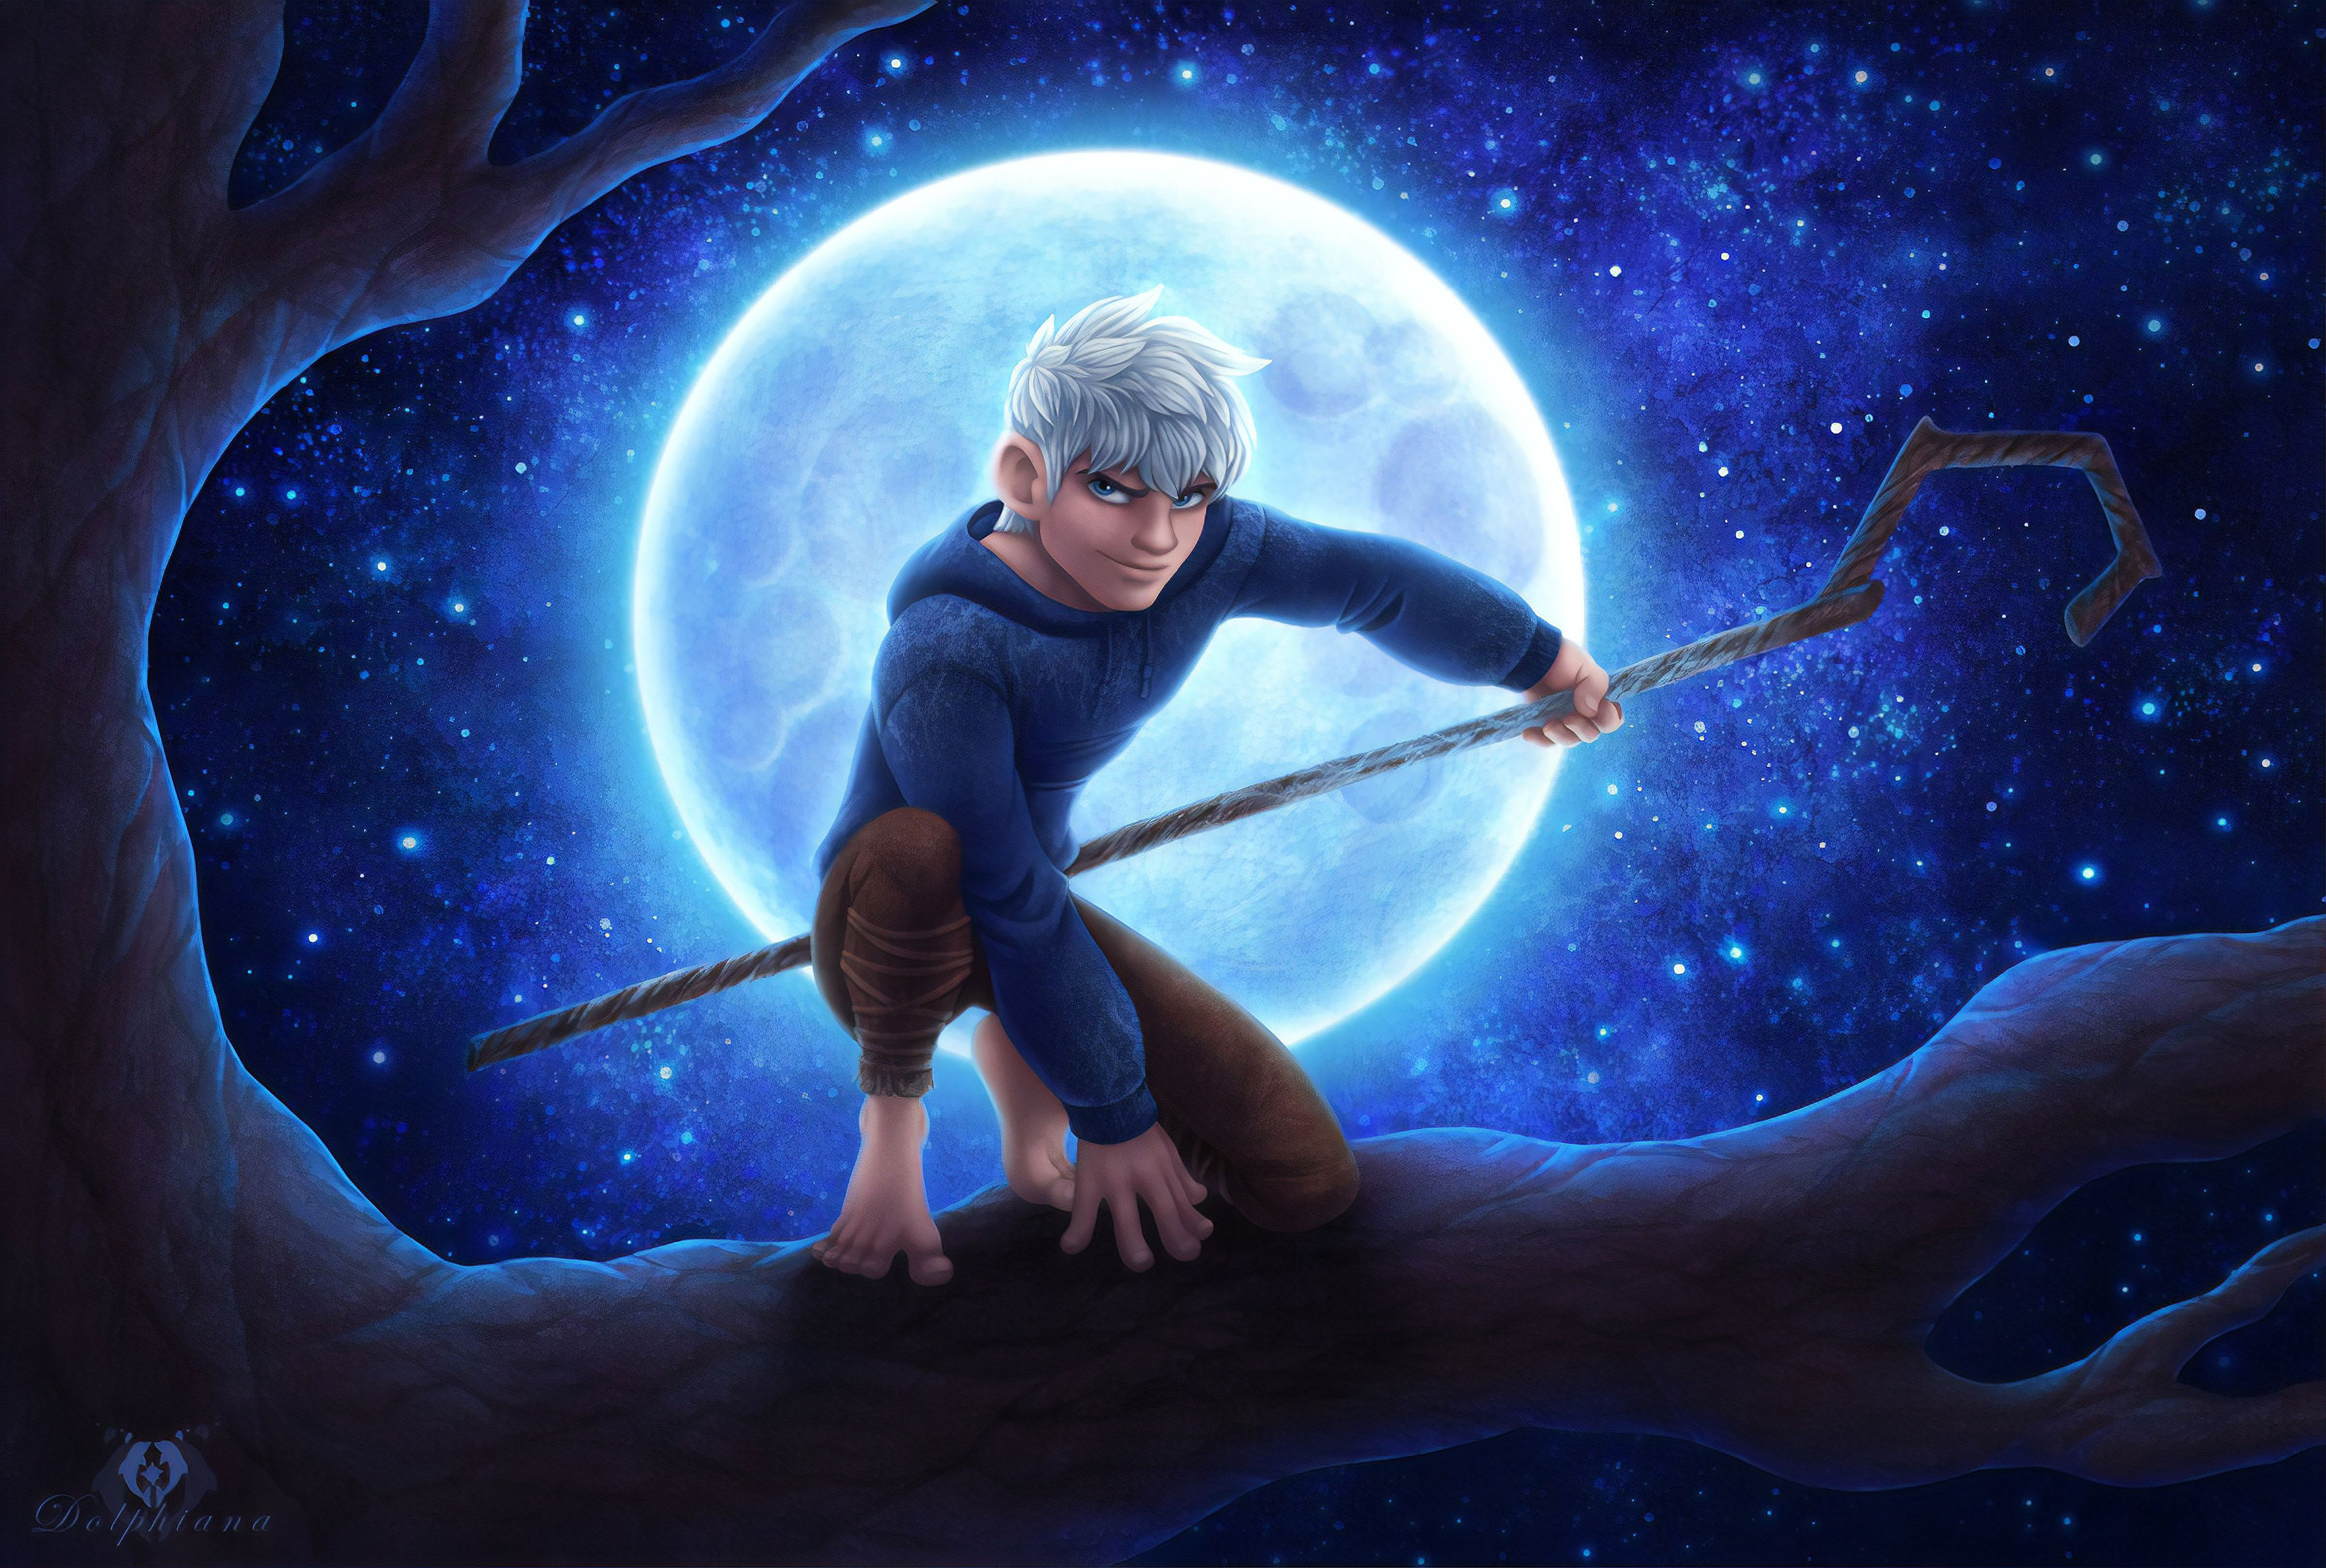 Jack Frost Wallpapers Top Free Jack Frost Backgrounds Wallpaperaccess